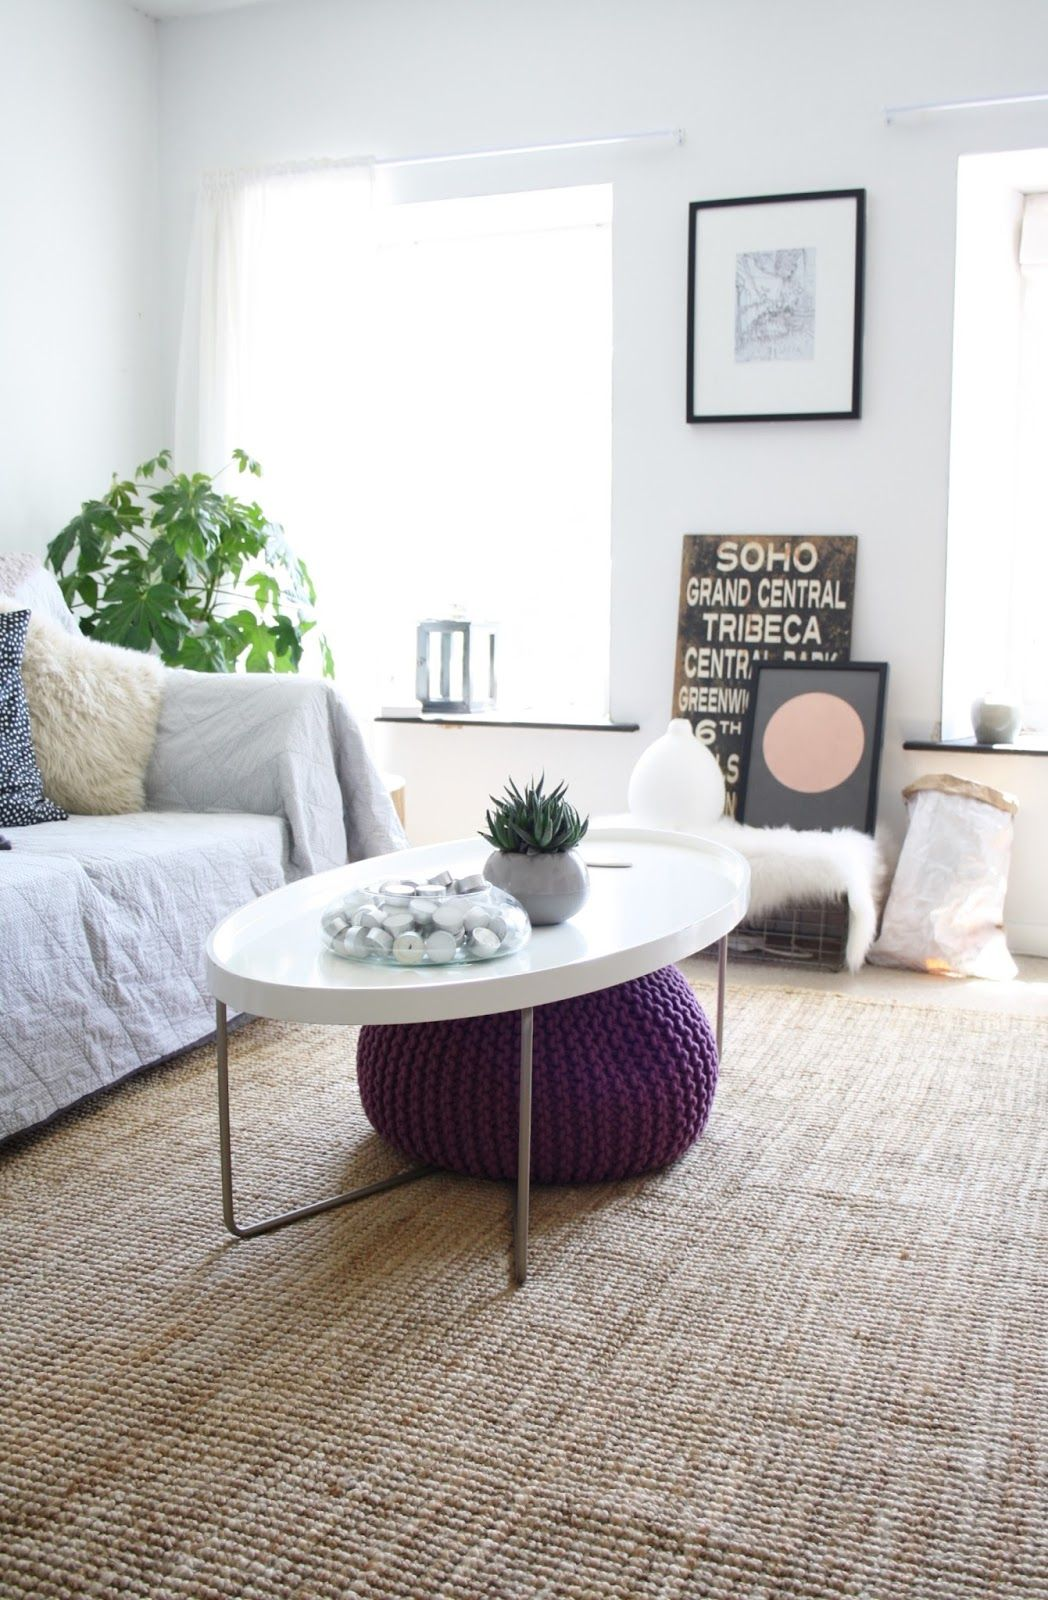 STYLE, SPACE STUFF: Urban Jungle Bloggers, Plant Pots. | Interiors ...